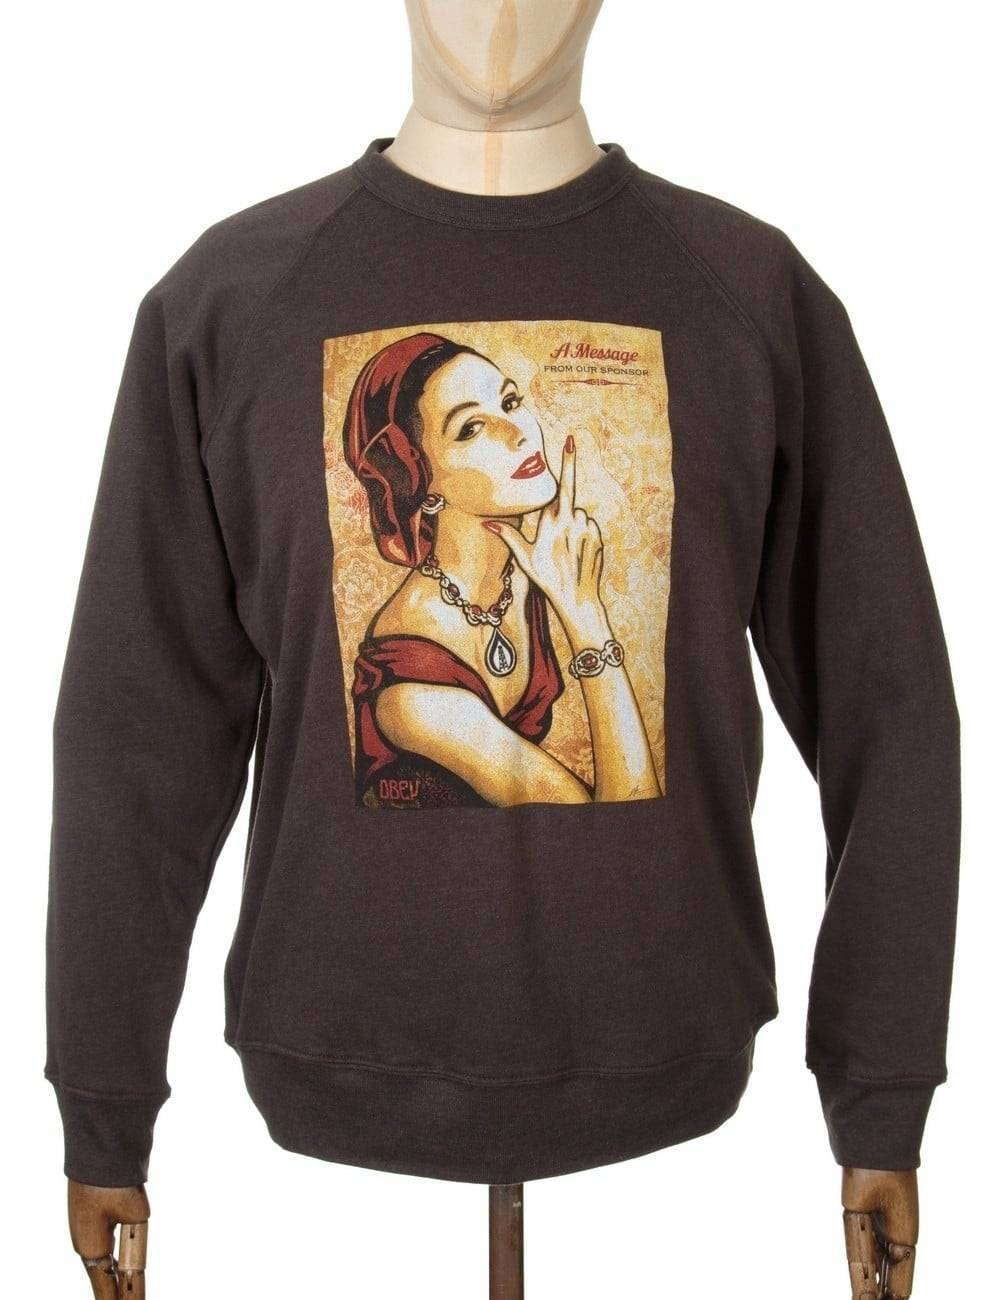 Obey Clothing Message from our Sponsor Sweat - Vintage Black Size: Sma